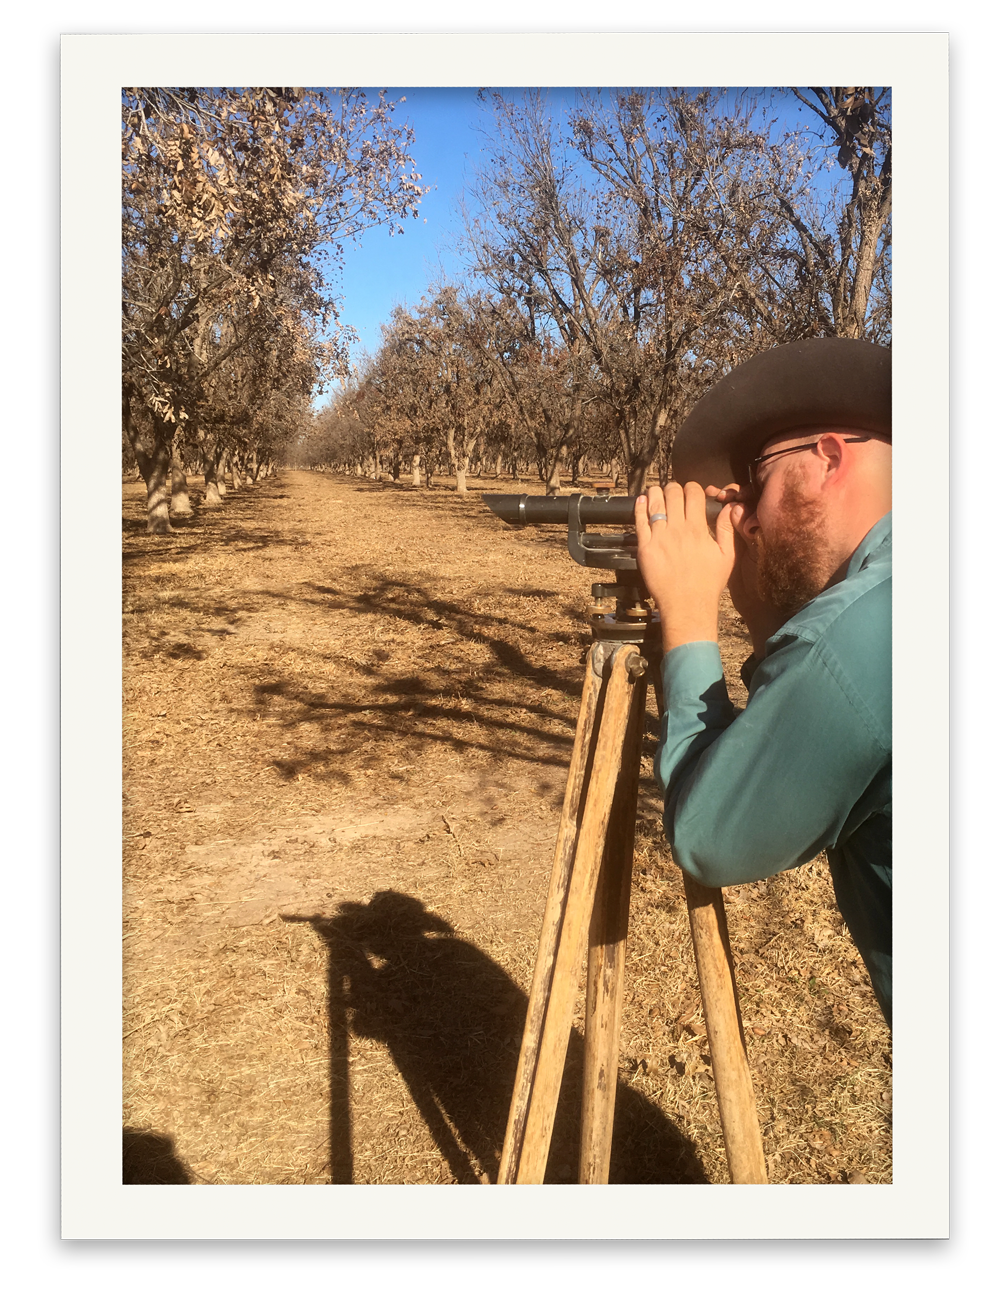 Belding Farms General Manager Zachary Swick checking the land slope before starting to irrigate.